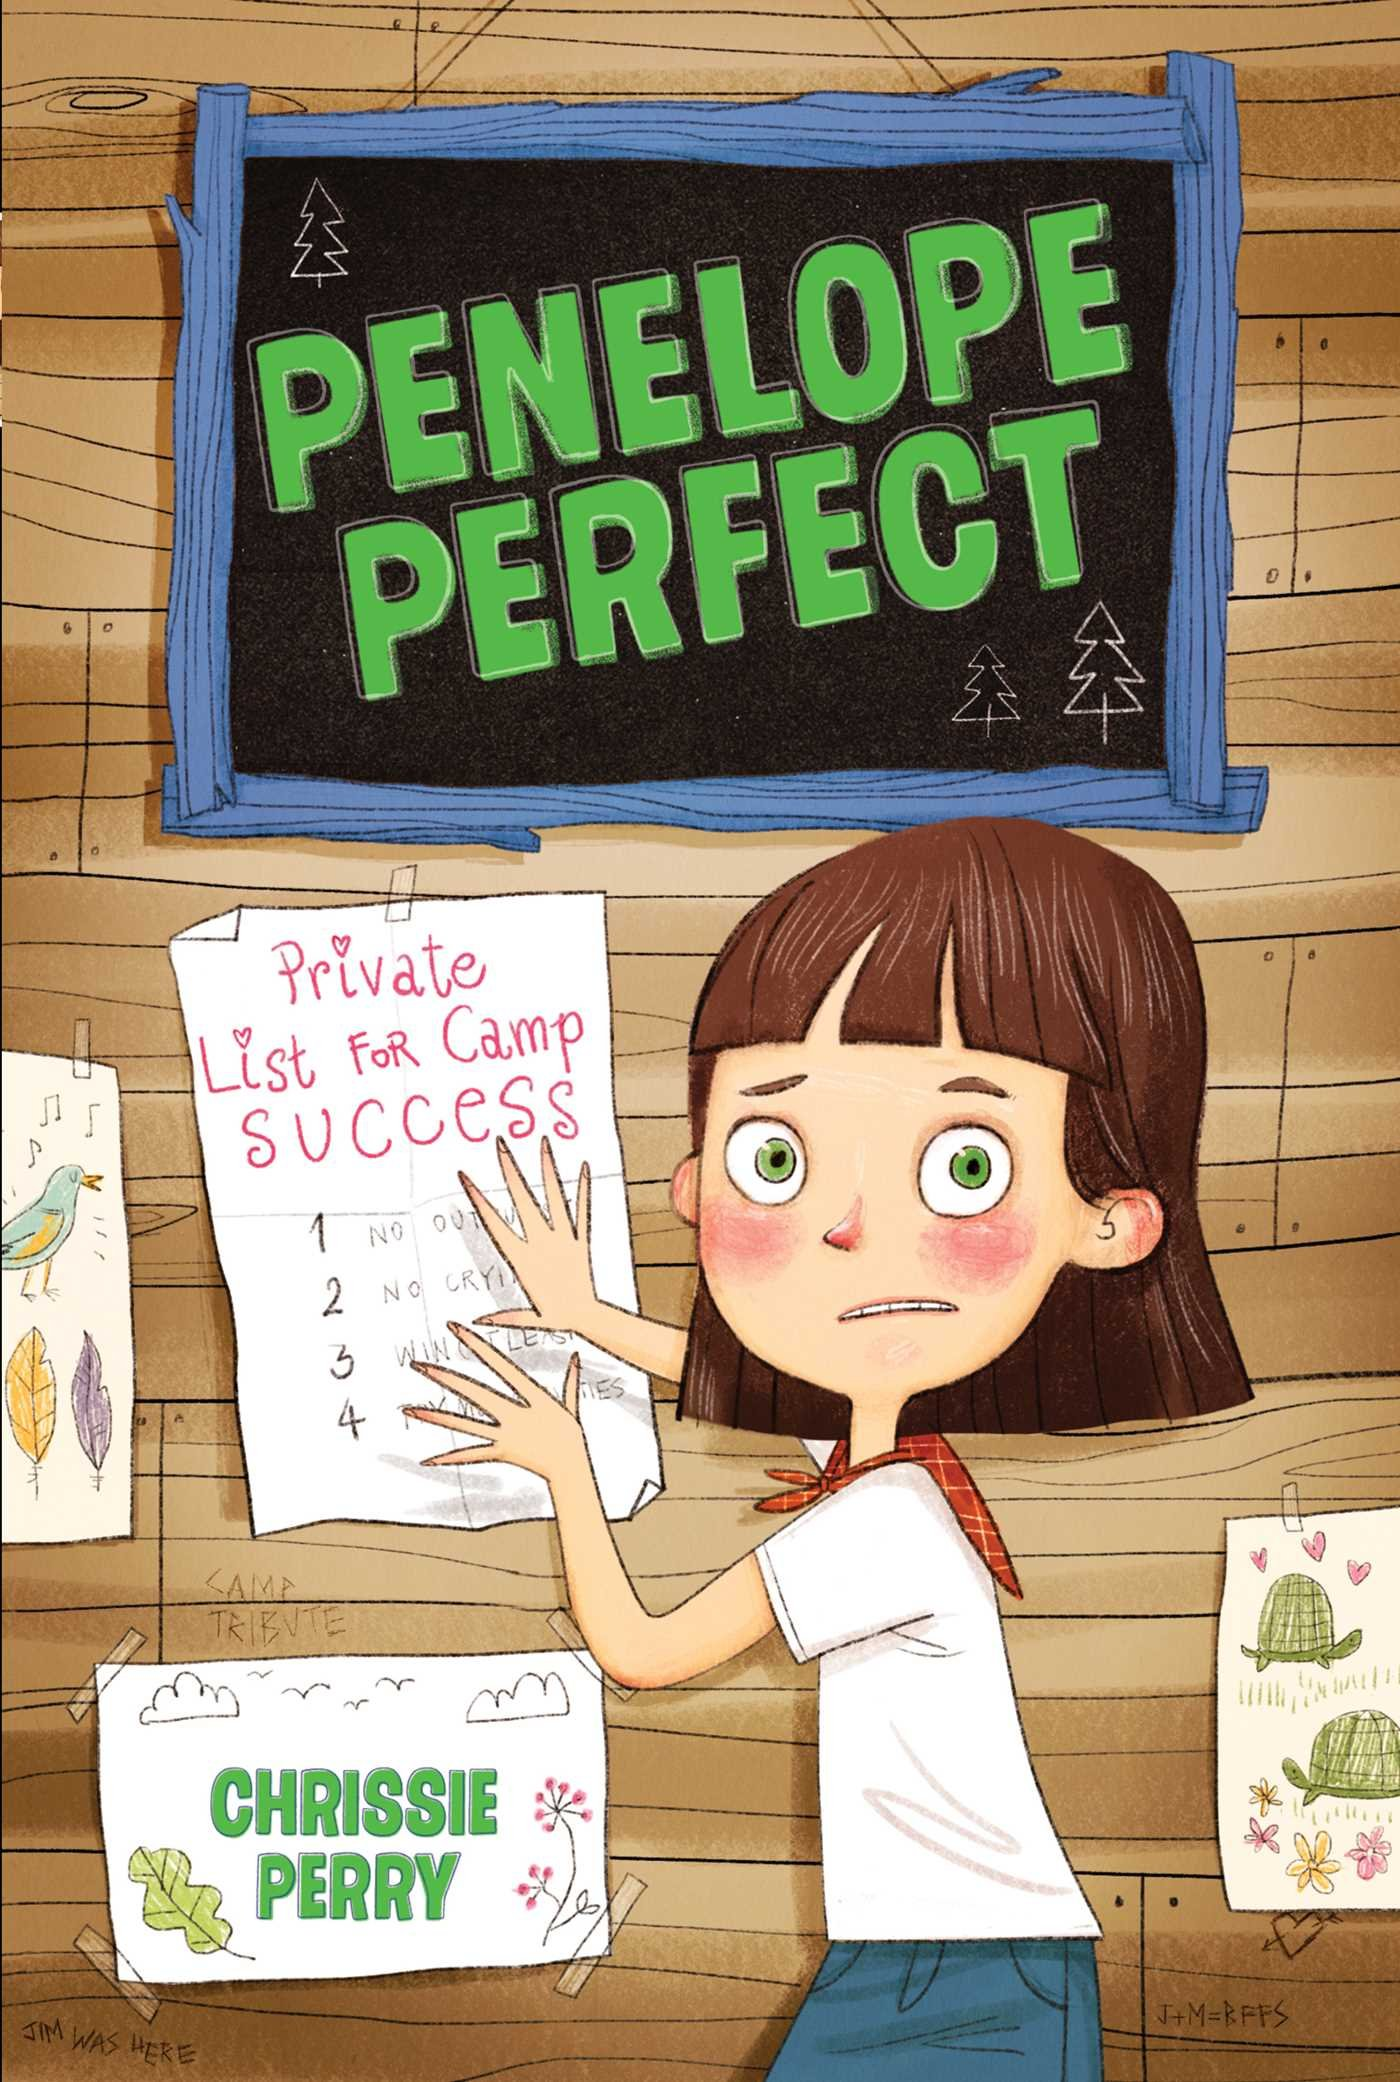 Download Private List for Camp Success (Penelope Perfect) ebook